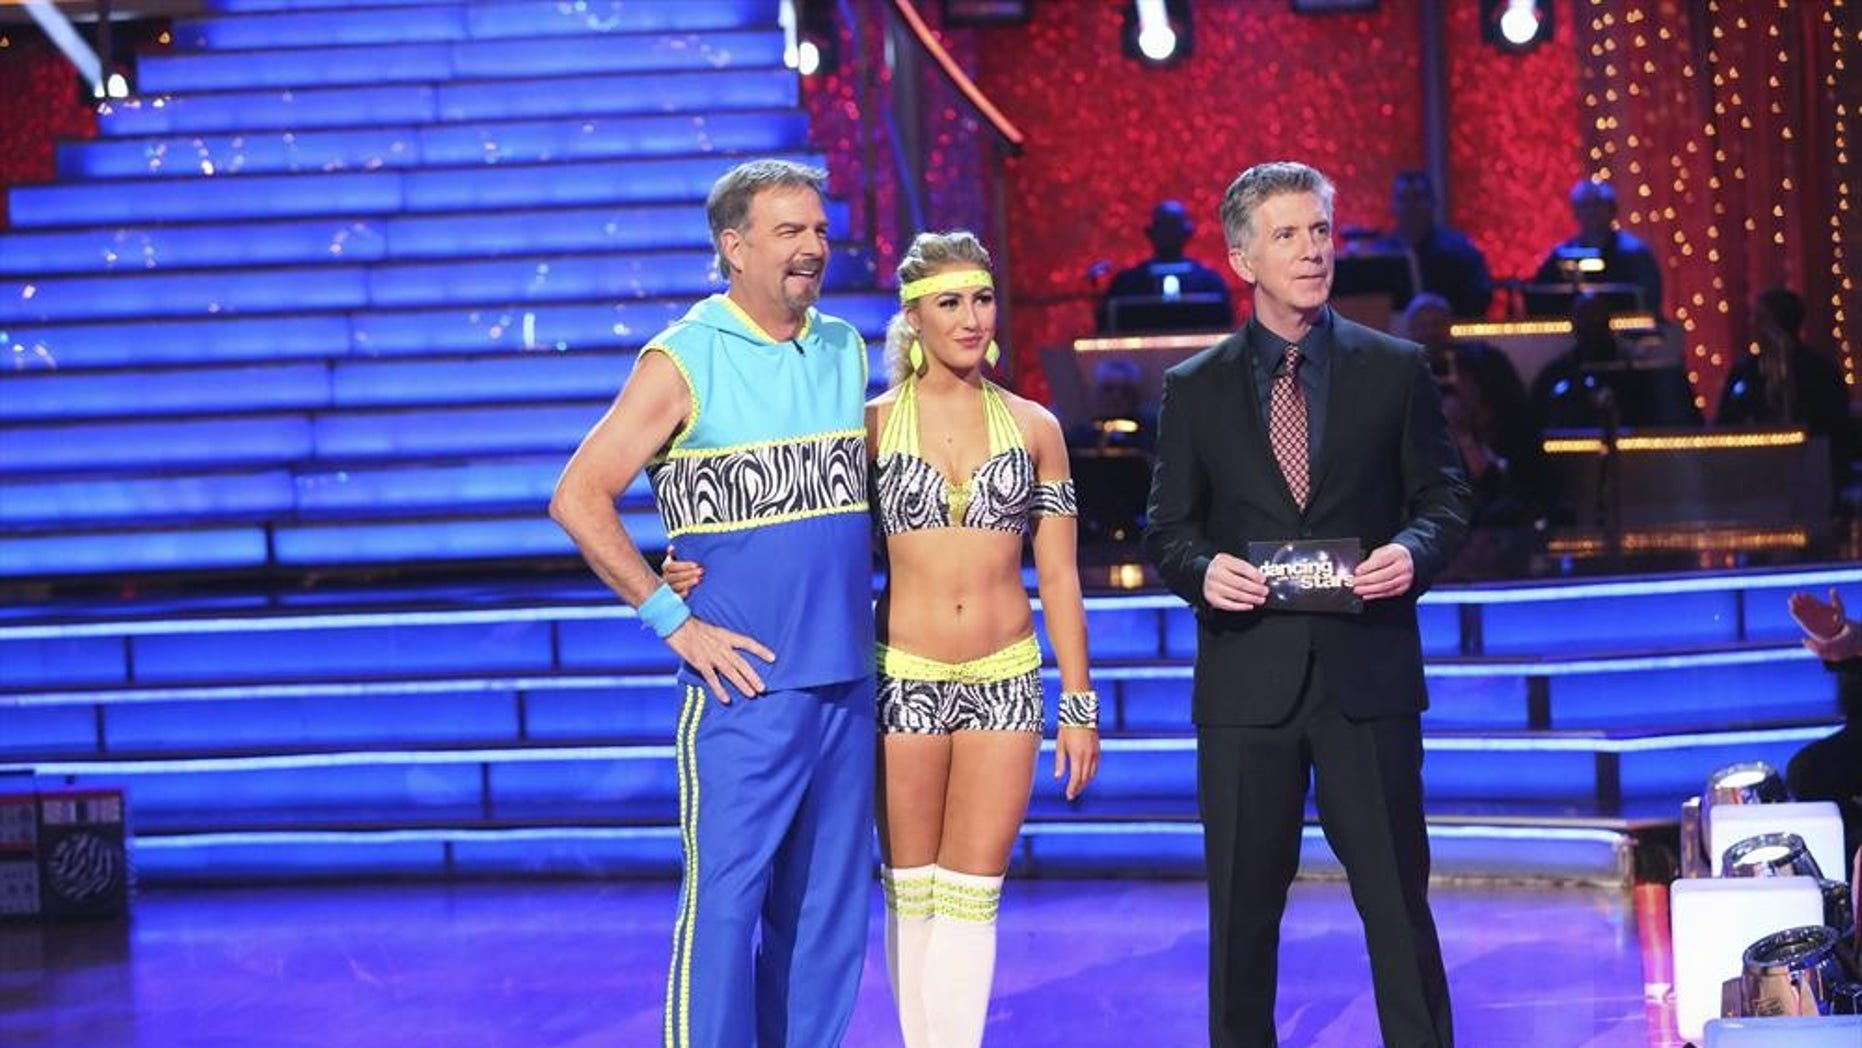 """Bill Engvall and Emma Slater appear alongside host Tom Bergeron on """"Dancing with the Star."""""""